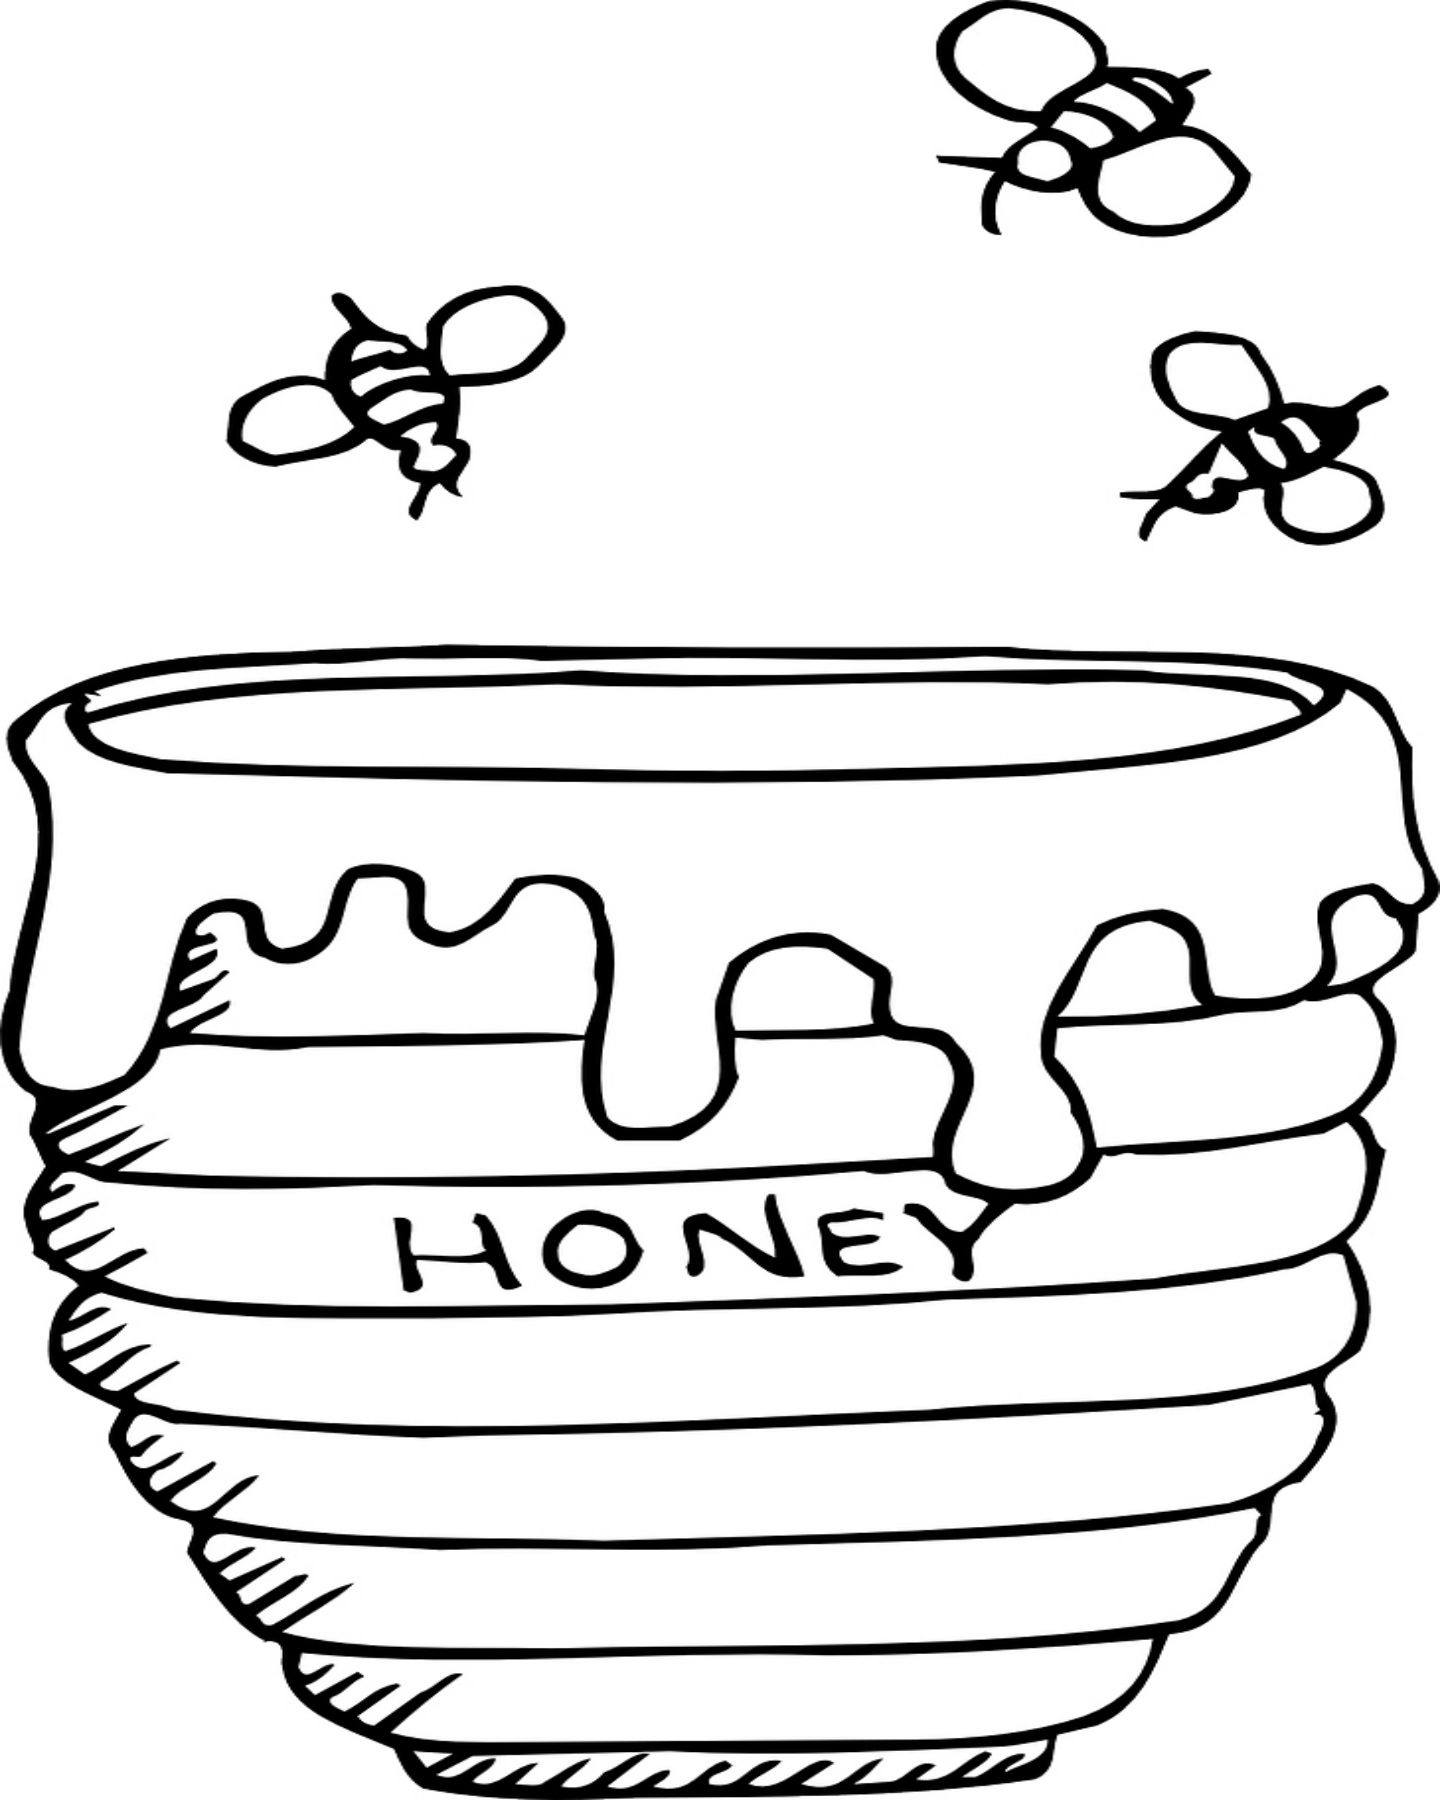 Honey Jar Coloring Page Plantovizor Coloring Pages Rosh